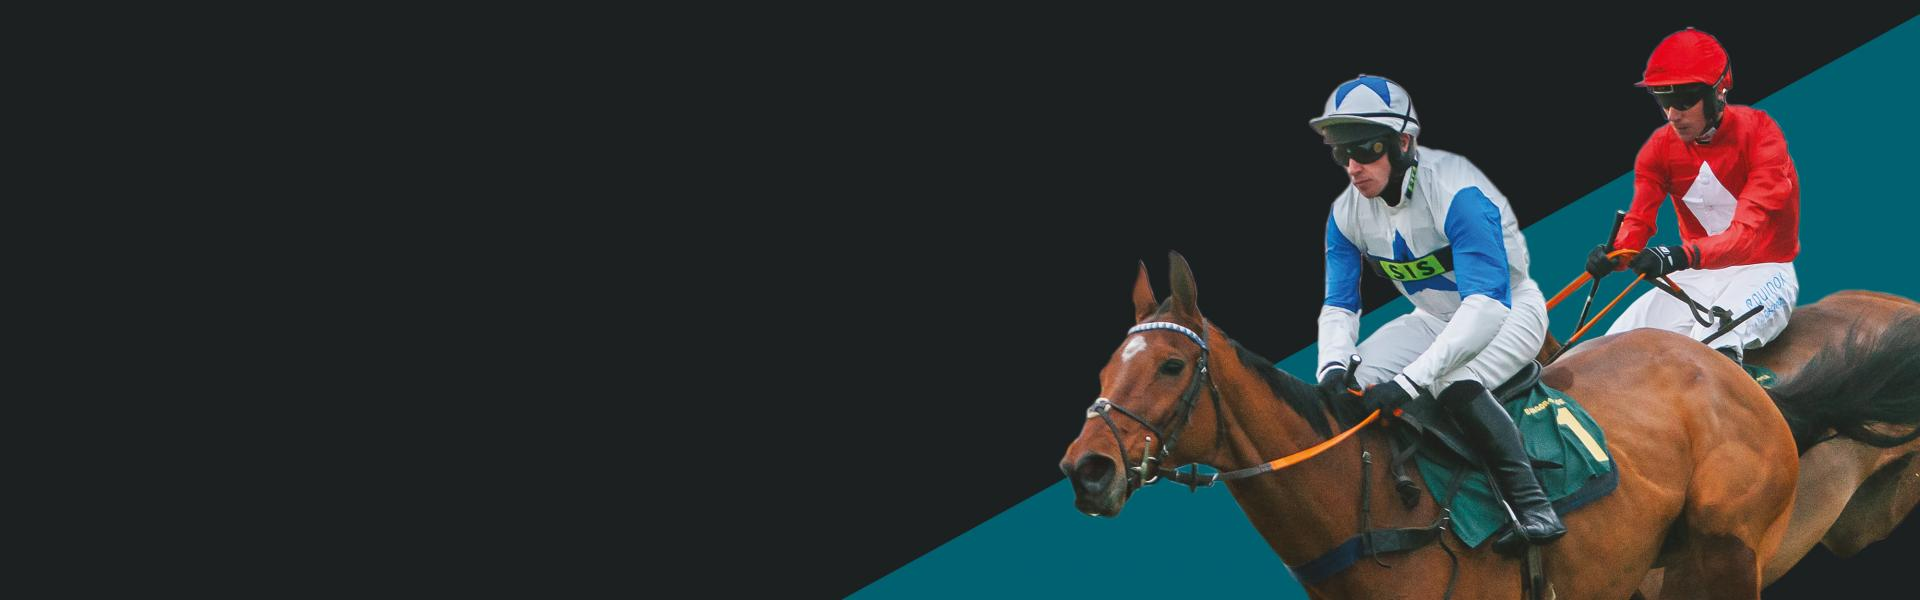 Welcome to Sky Sports Racing Day thumbnail image